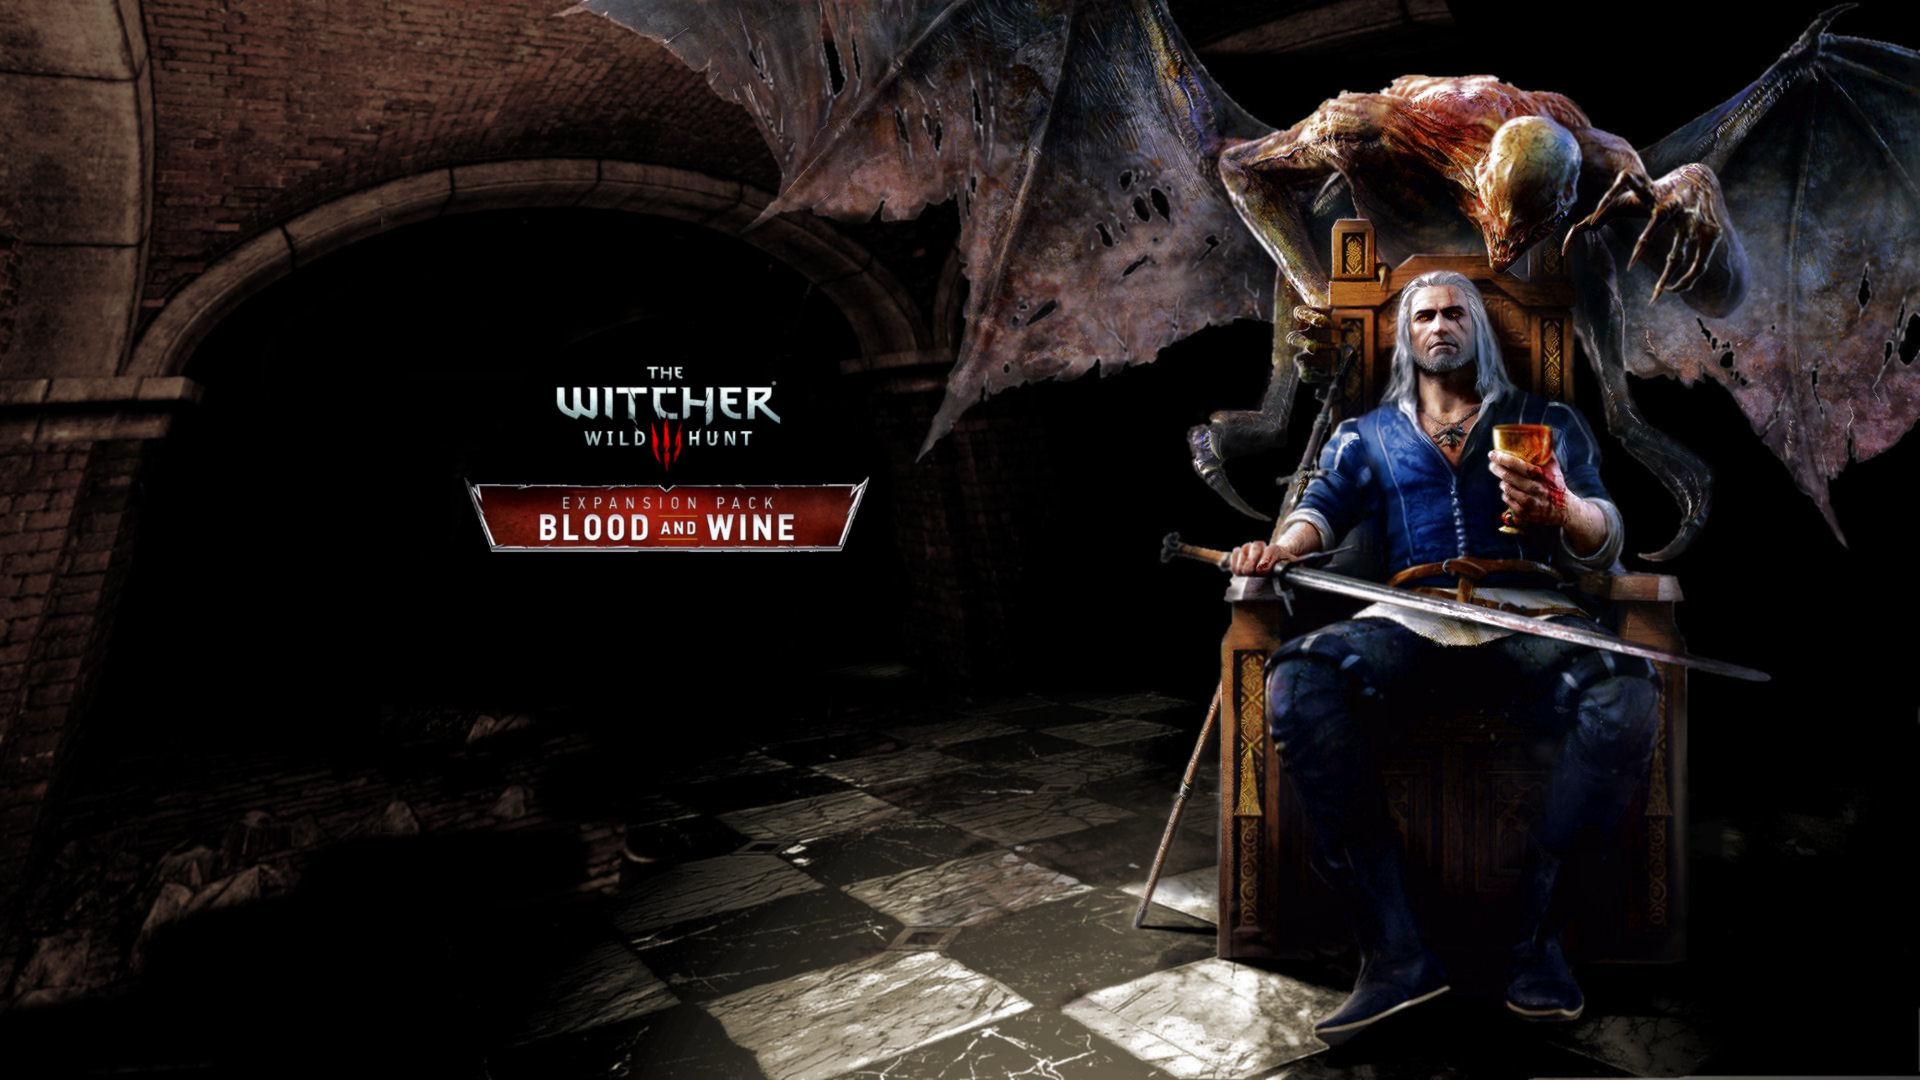 Wallpaper Blood And Wine At The Witcher 3 Nexus Mods And Community